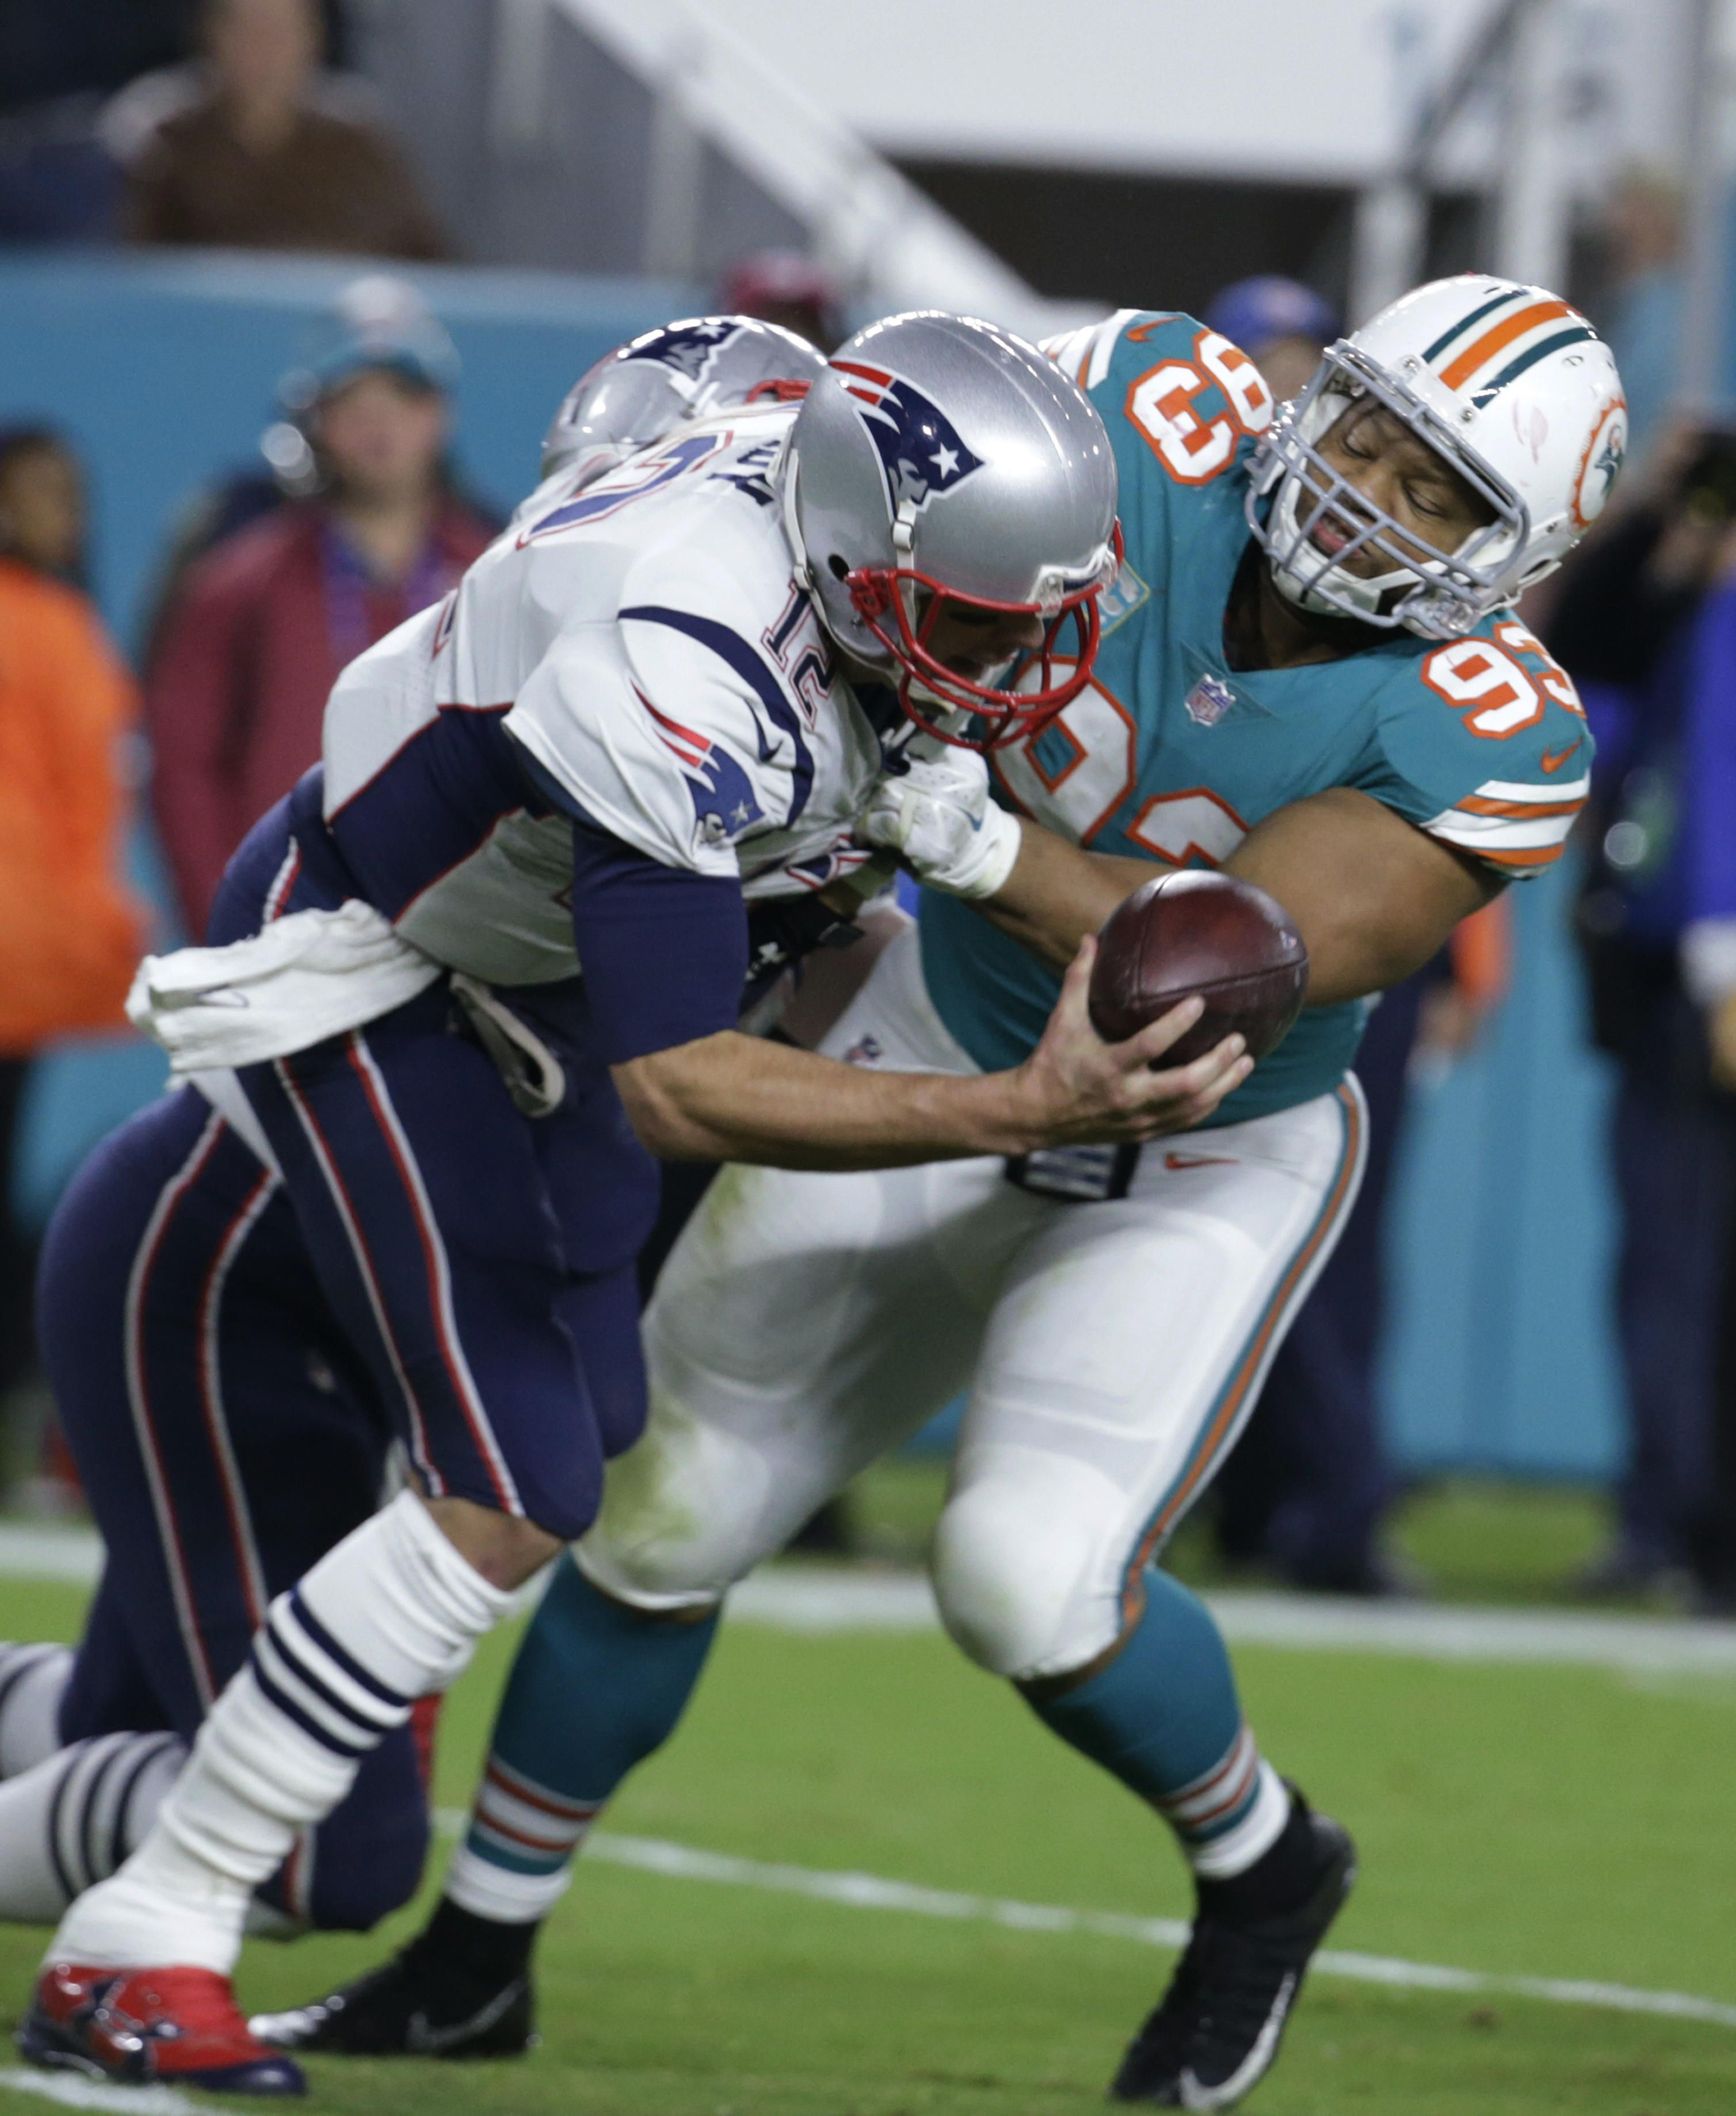 Dolphins Dominate Patriots Denying Them Chance To Clinch Playoff Berth Miami Dolphins Patriots Dolphins Dolphins